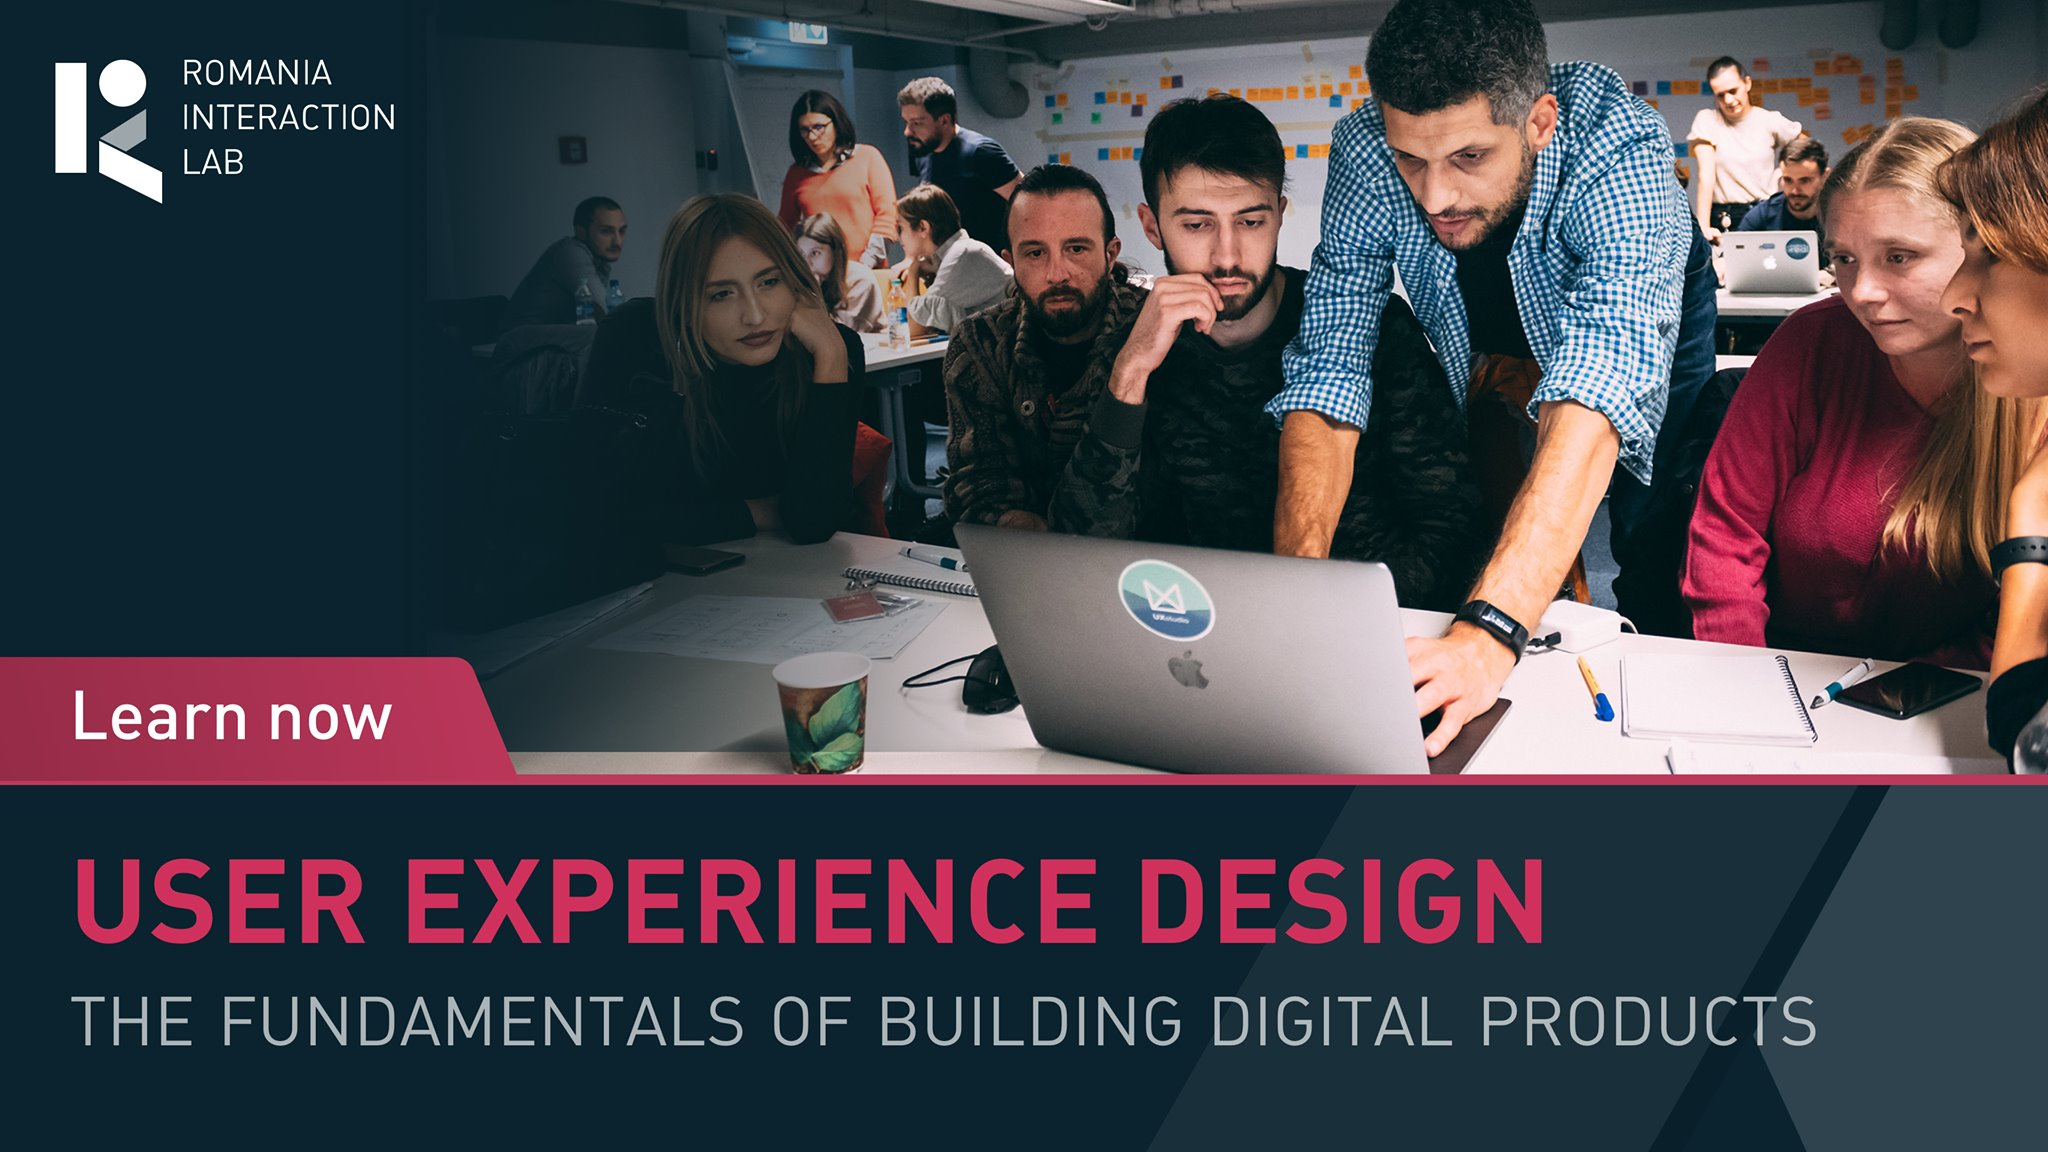 Curs User Experience Design / Design Thinking